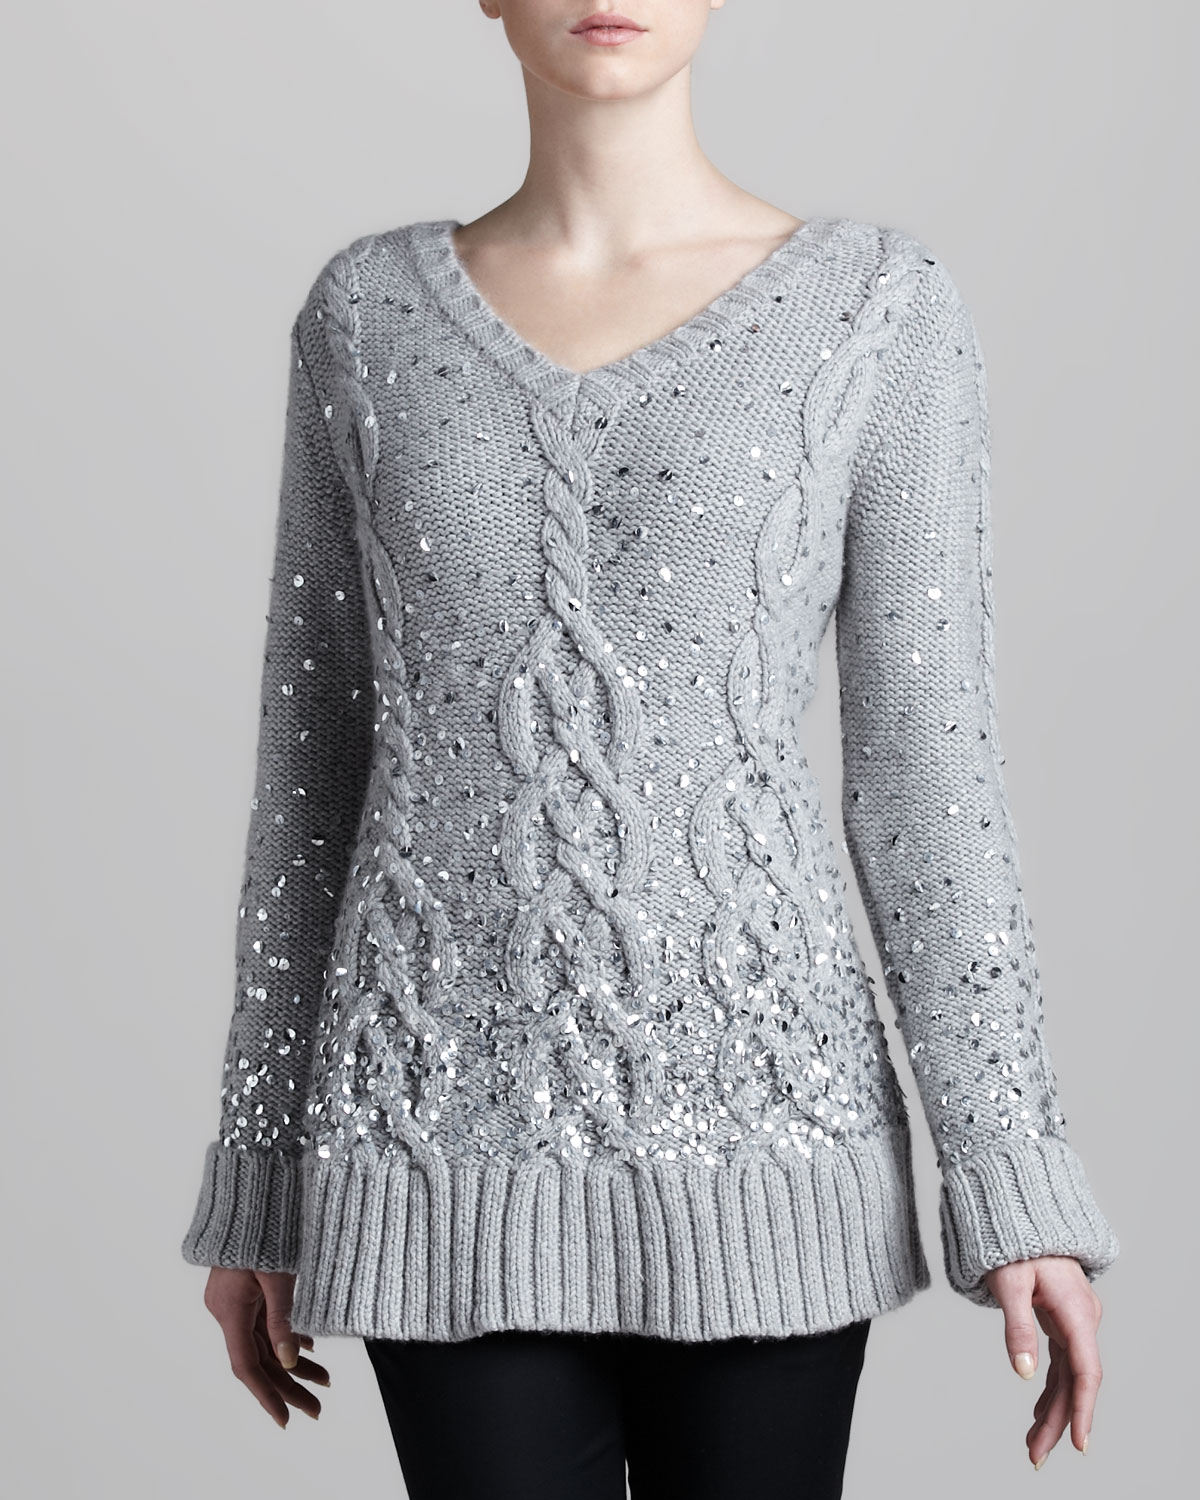 Donna karan Handknit Sequined Cable Sweater in Metallic | Lyst